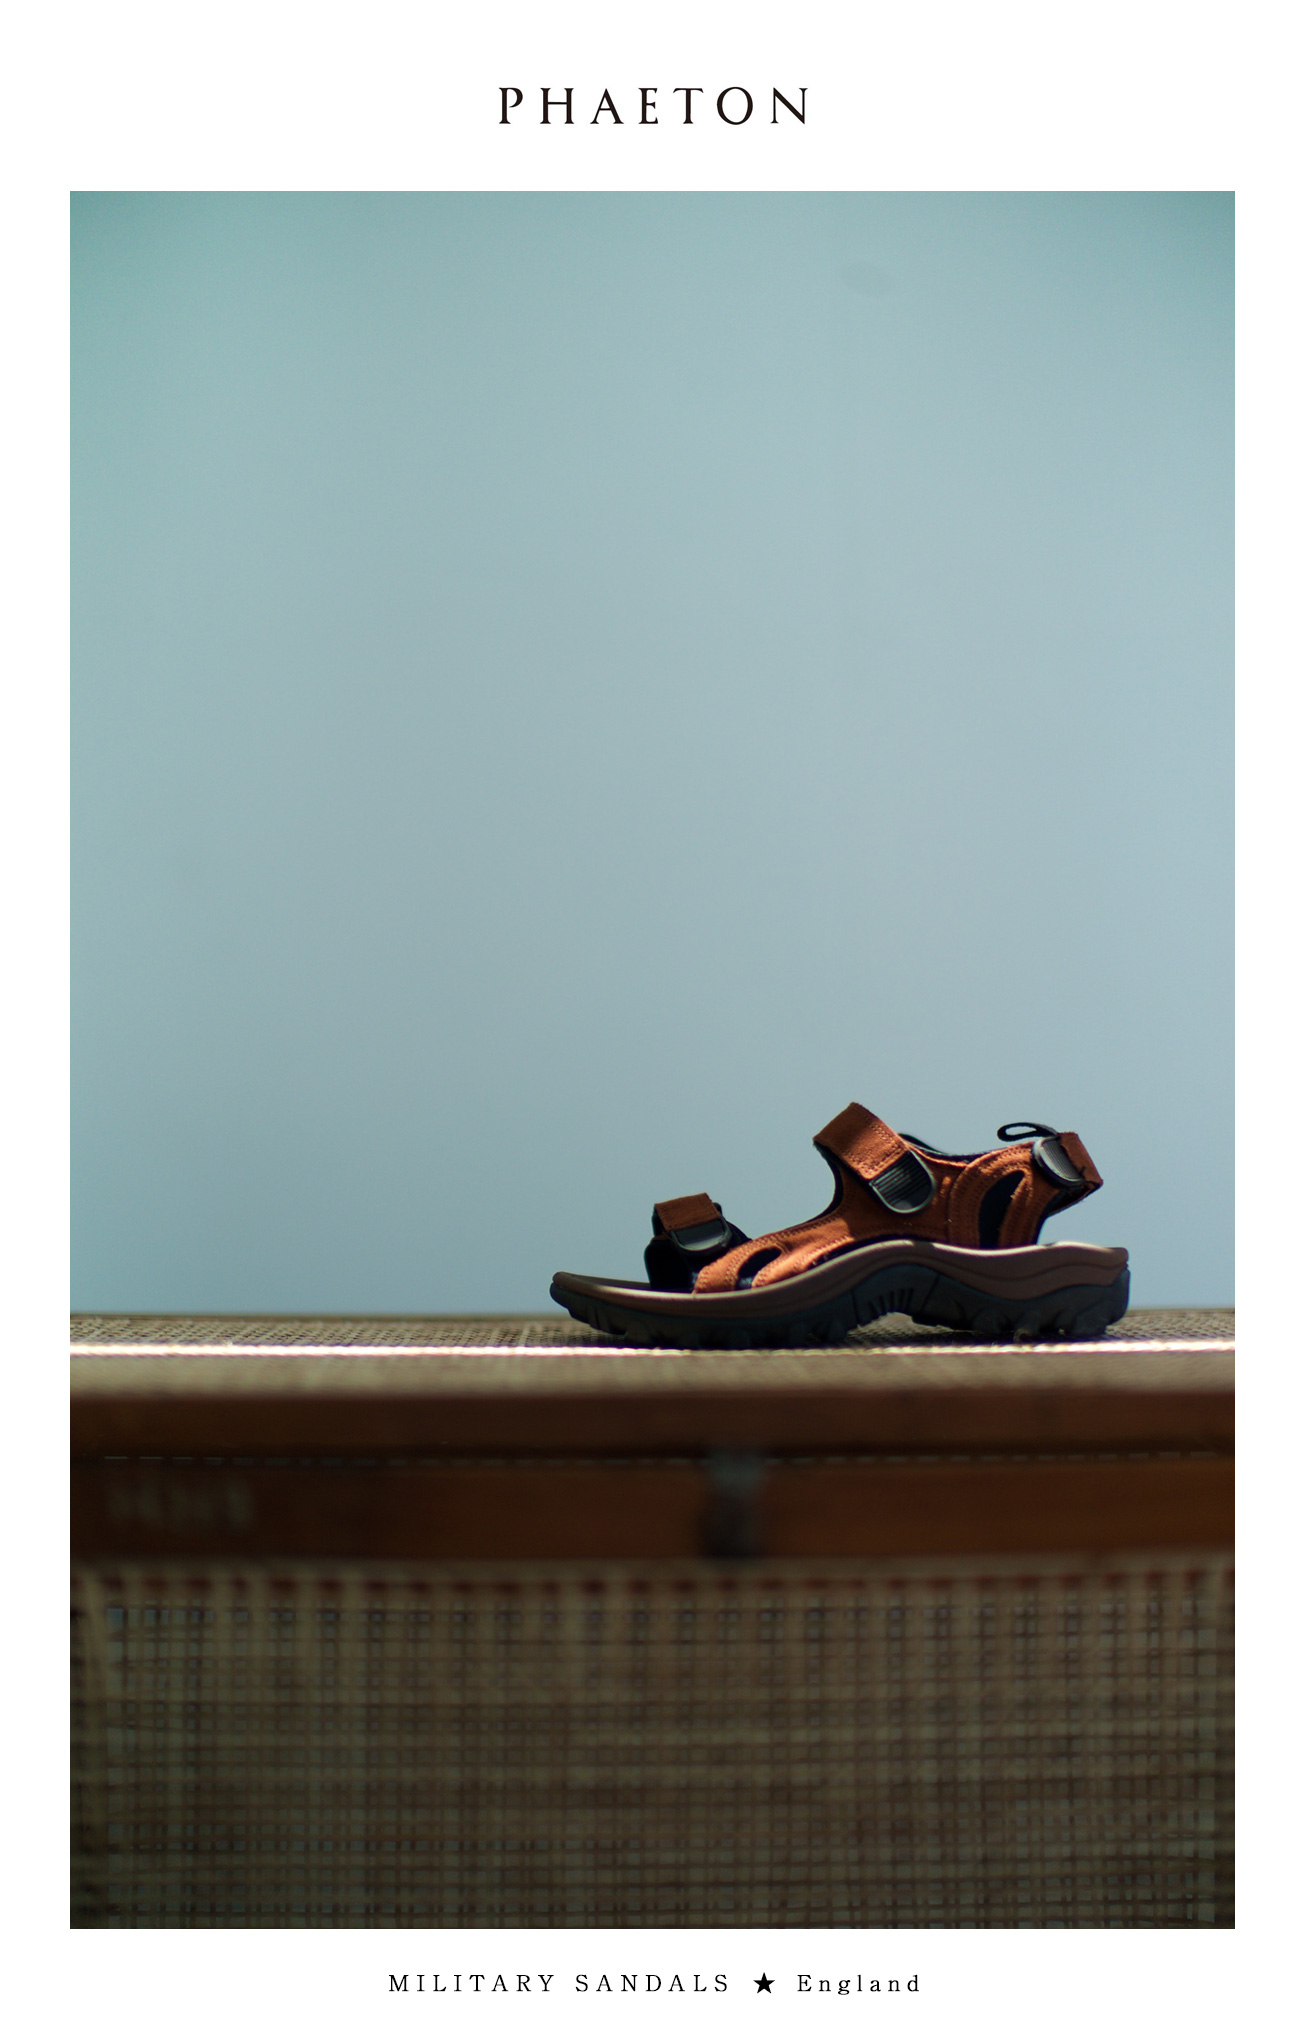 MILITARY_SANDALS_England1